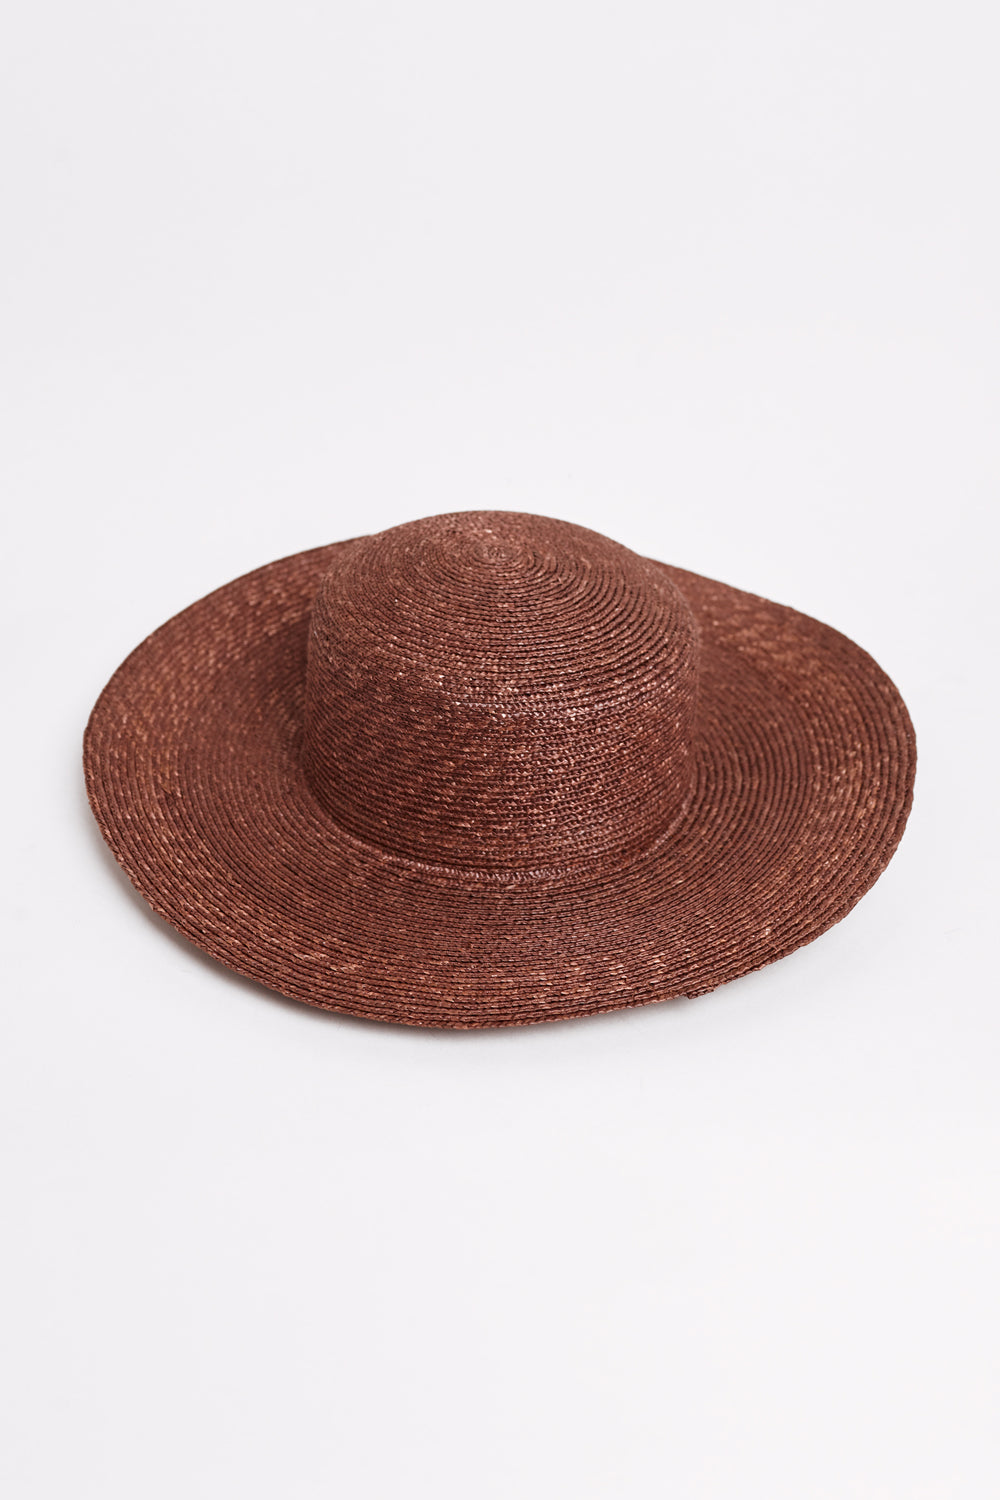 Medium Brim Flat Top Hat With Neckshade in Umber